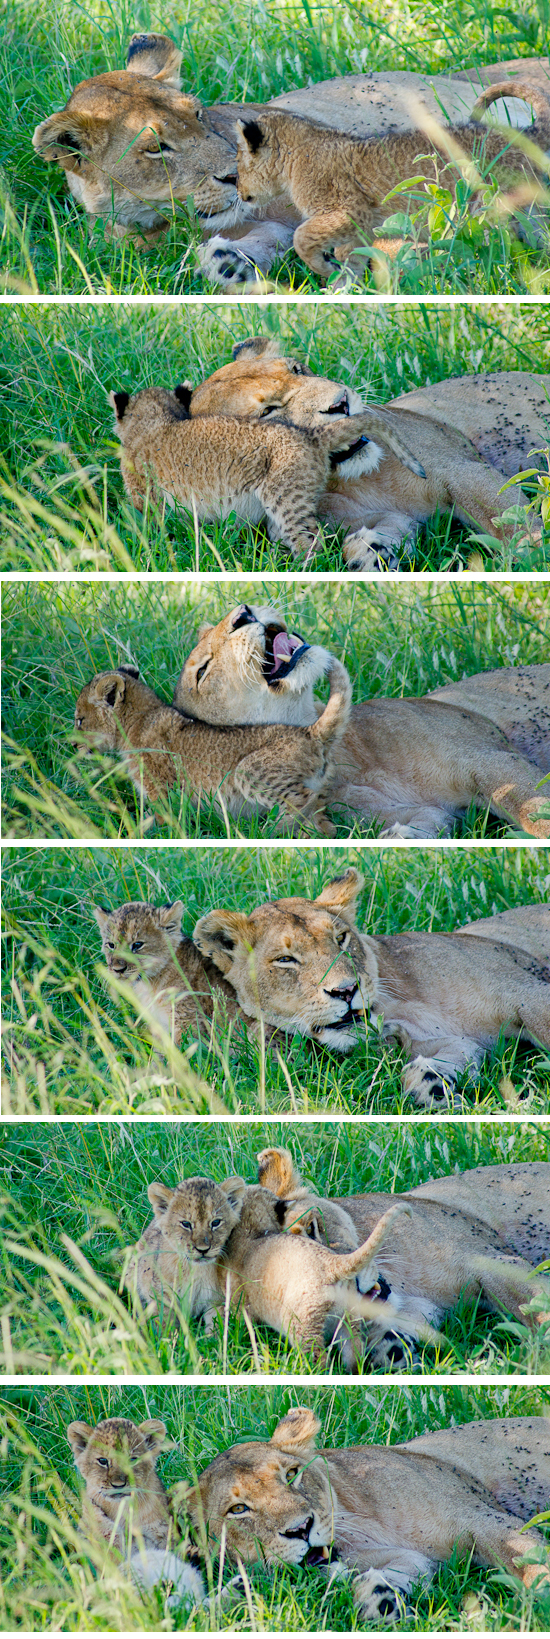 lioness and cub in the serengeti wildlife photographer